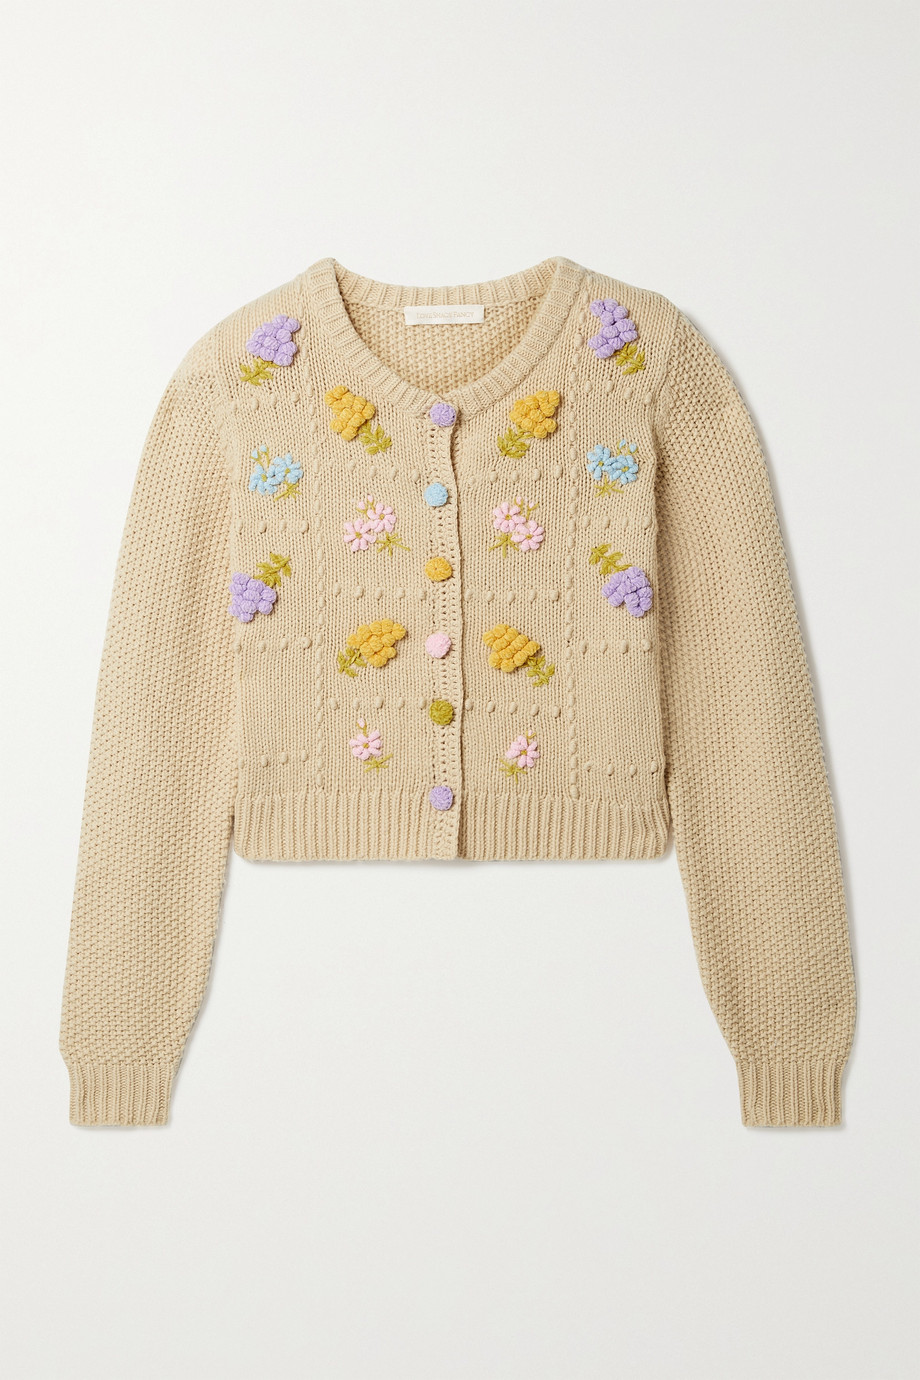 LoveShackFancy Briallon embroidered knitted cardigan